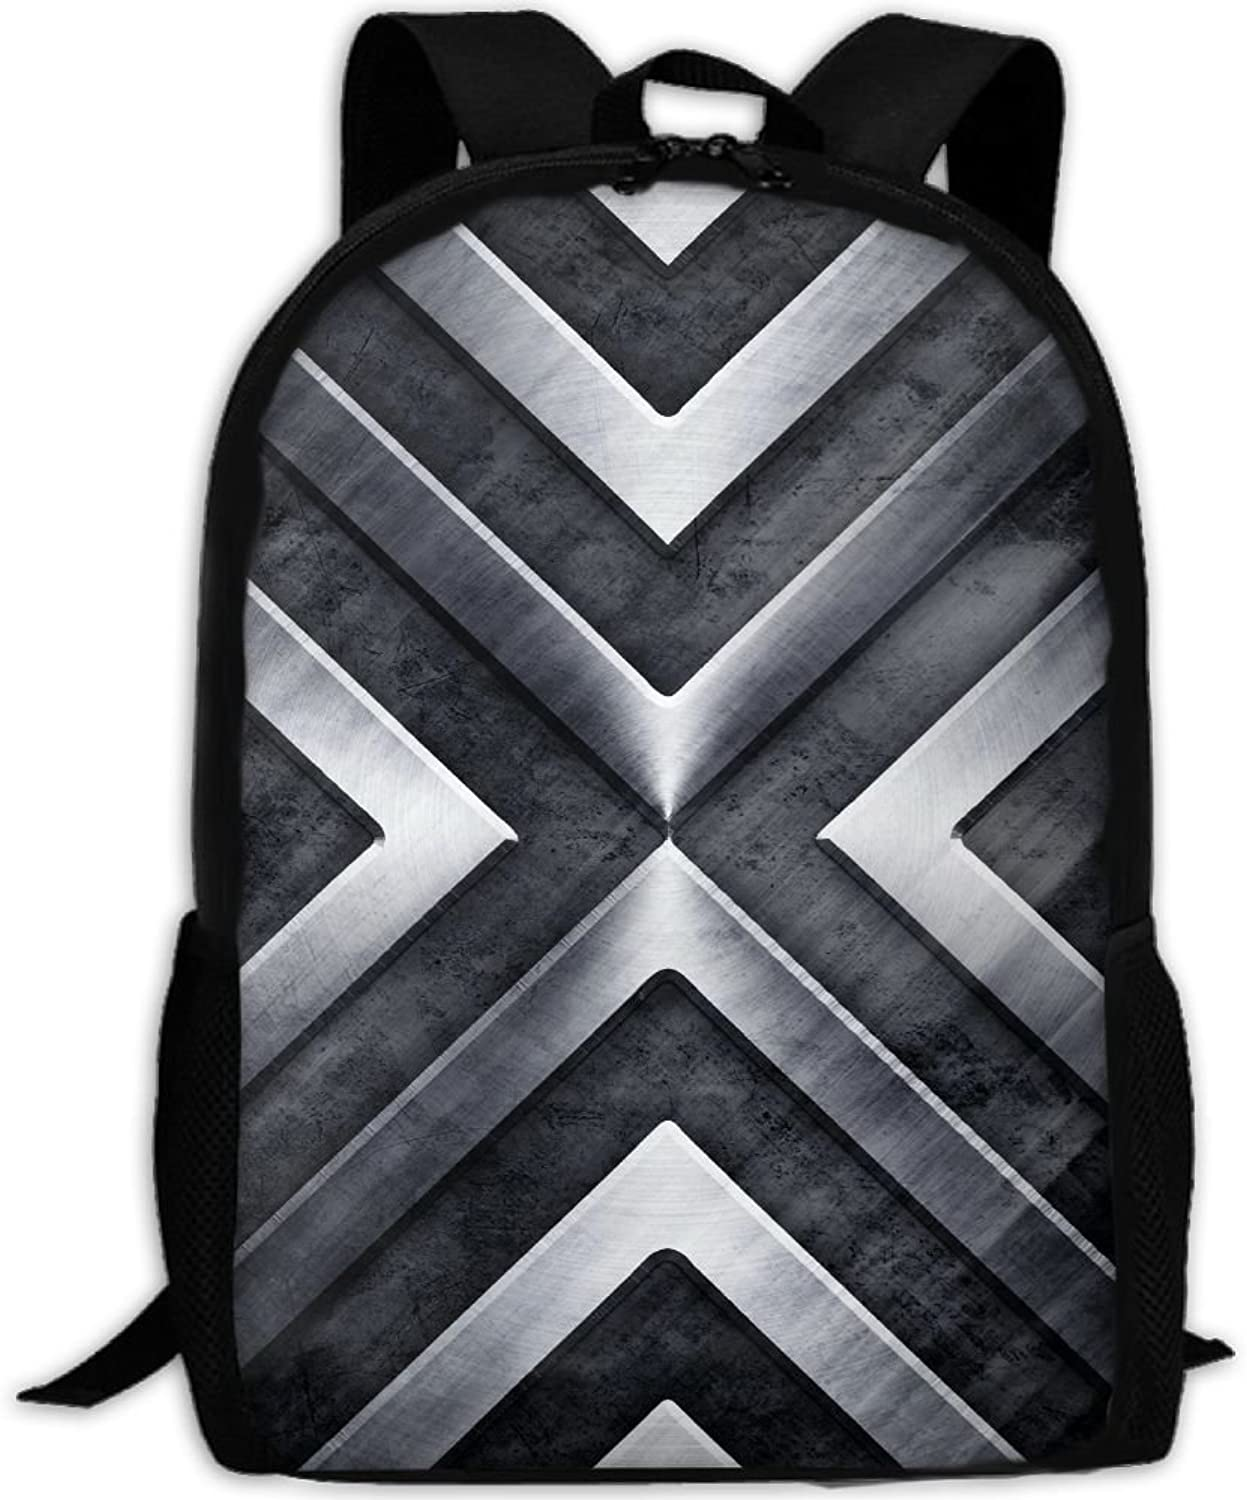 551b9b376898 Backpack Travel Hiking School Bags Silvery Geometry Abstract Daypack ...